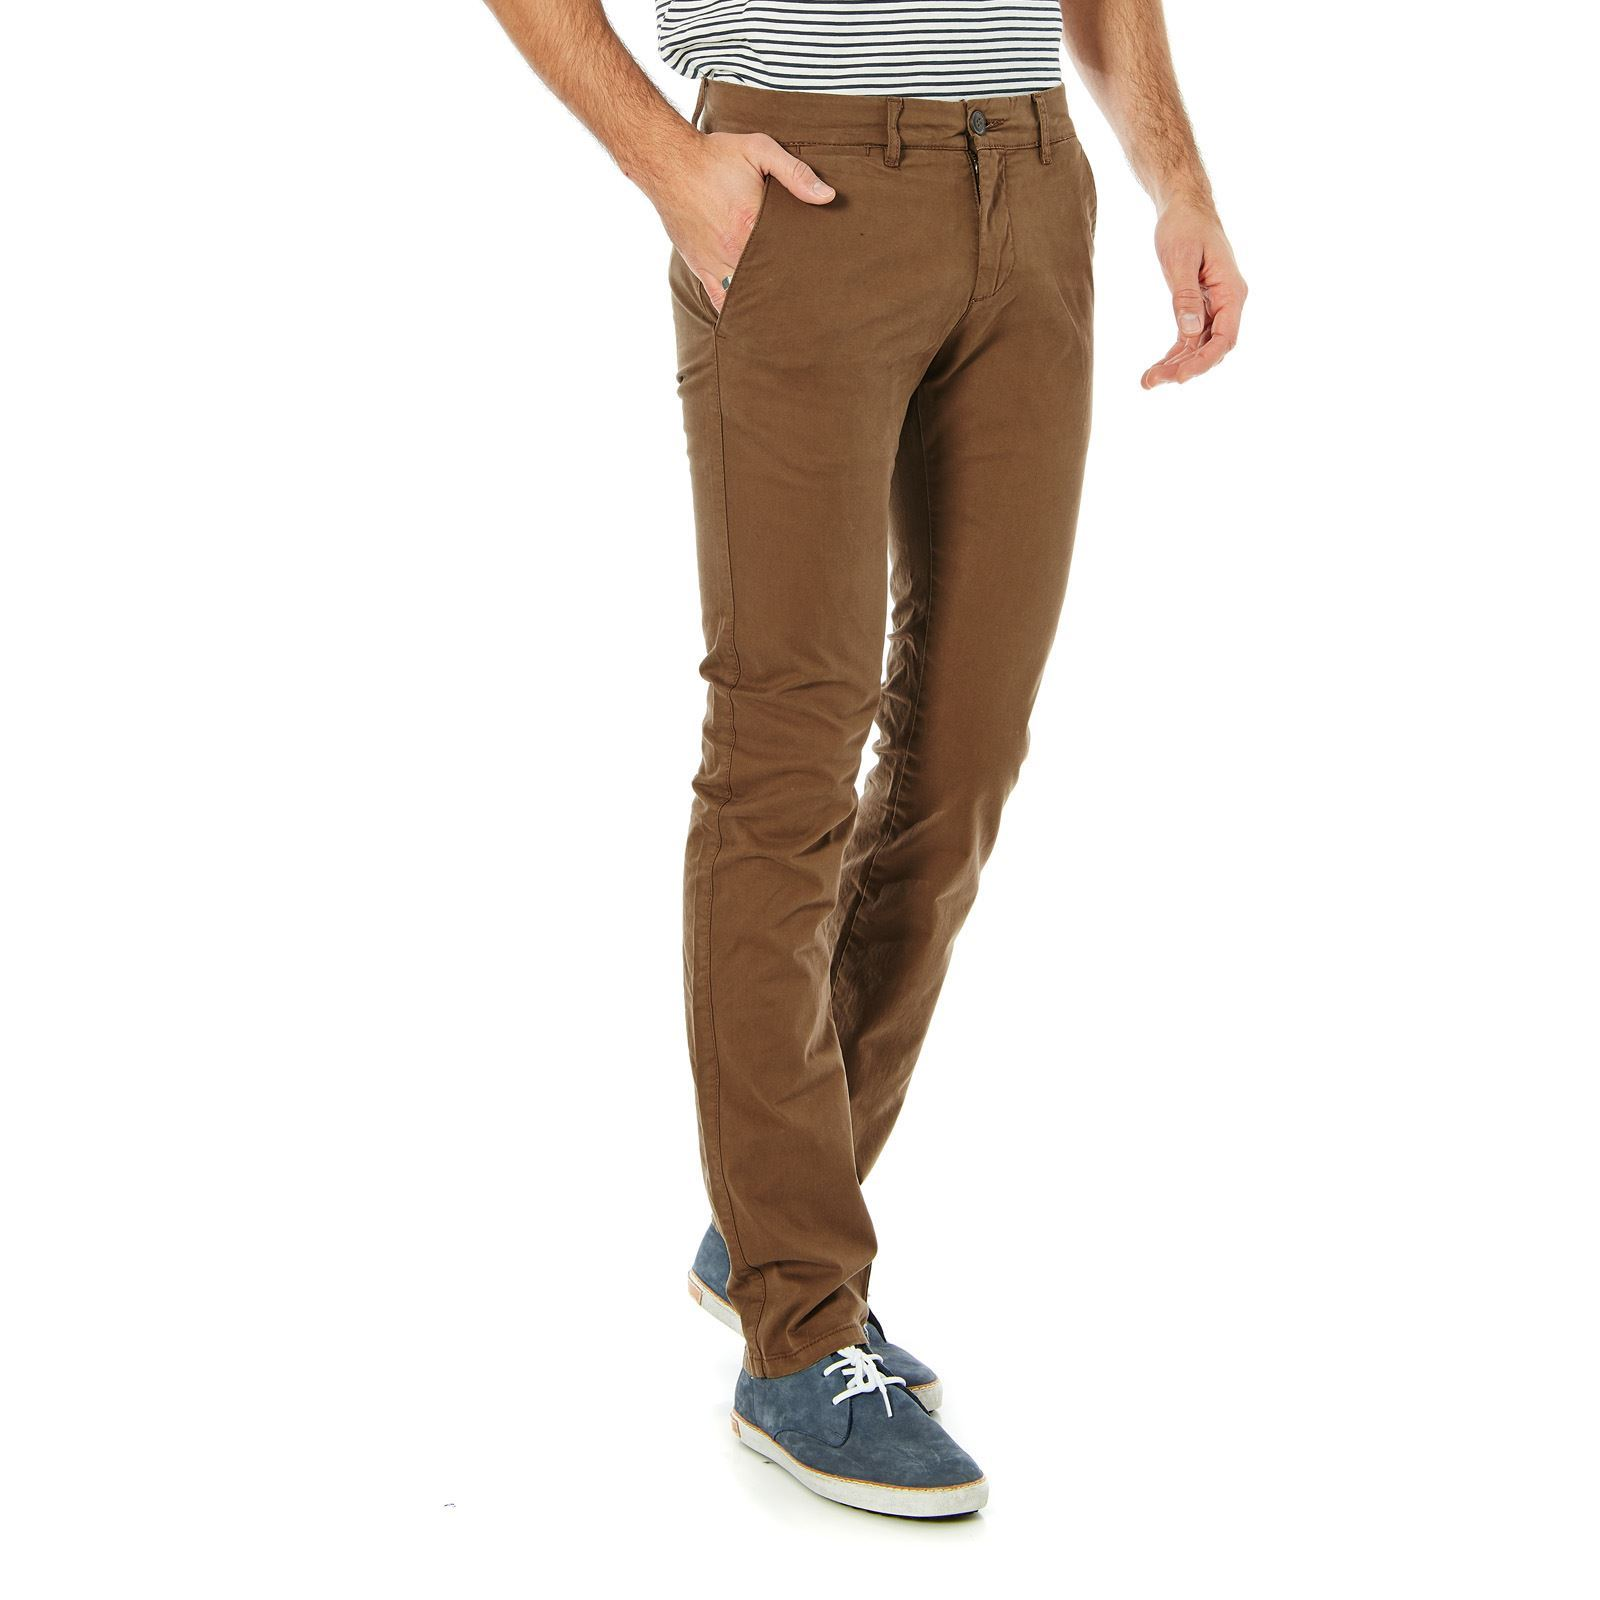 Celio Pantalon chino - marron  d2482cbd6a5